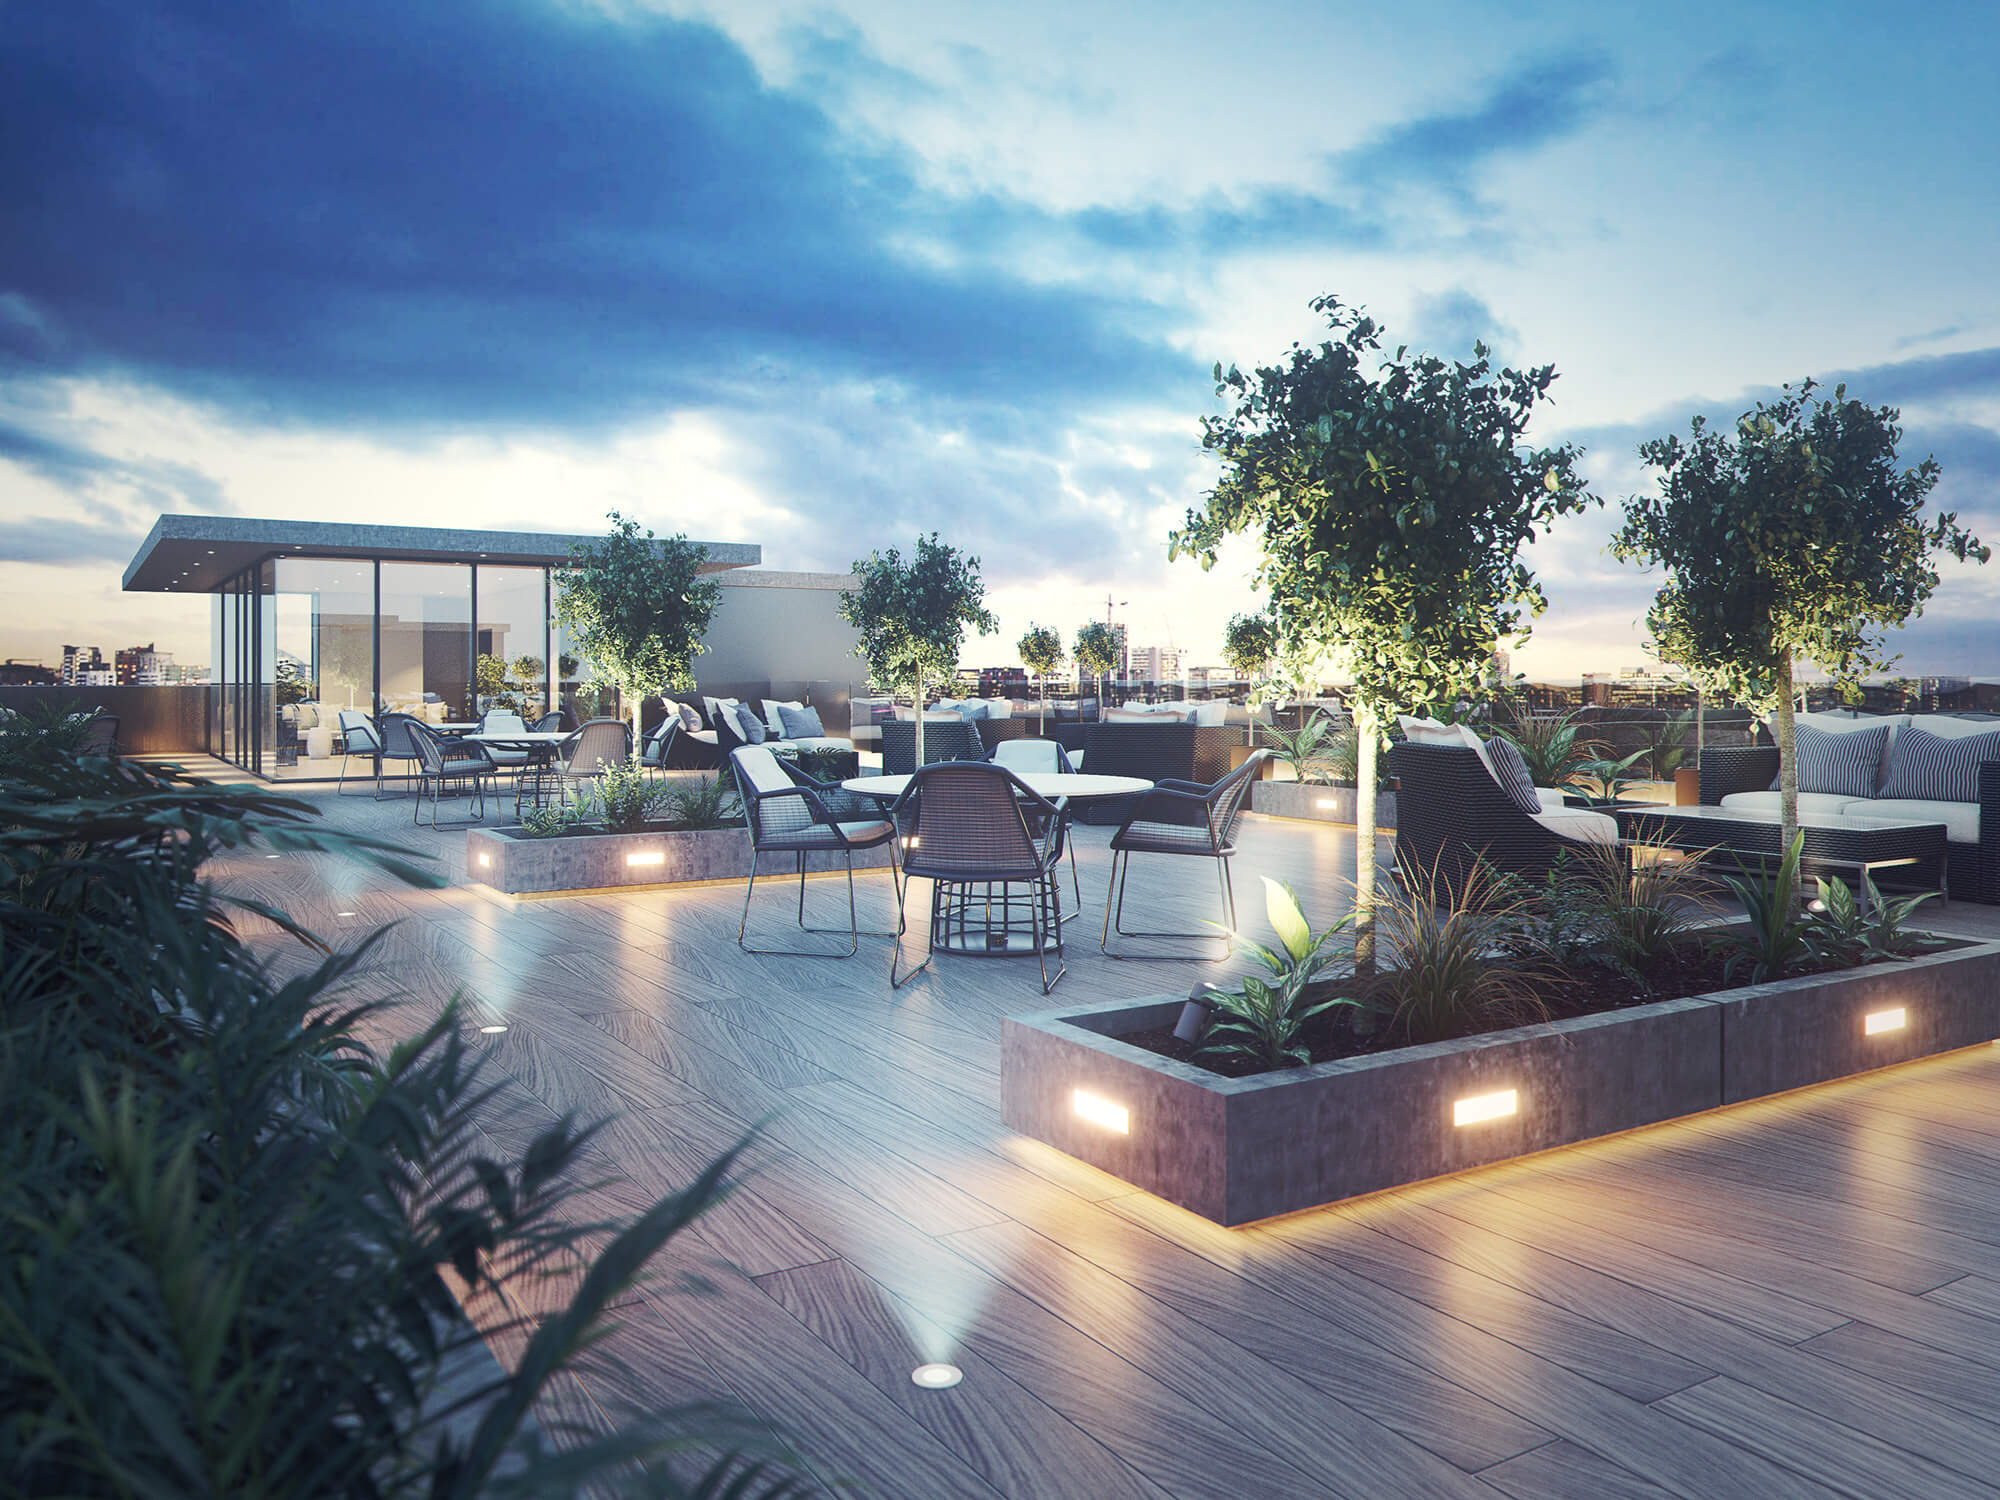 WHITE CROW STUDIOS - ROOF TERRACE CGI -ARCHITECTURAL CGI